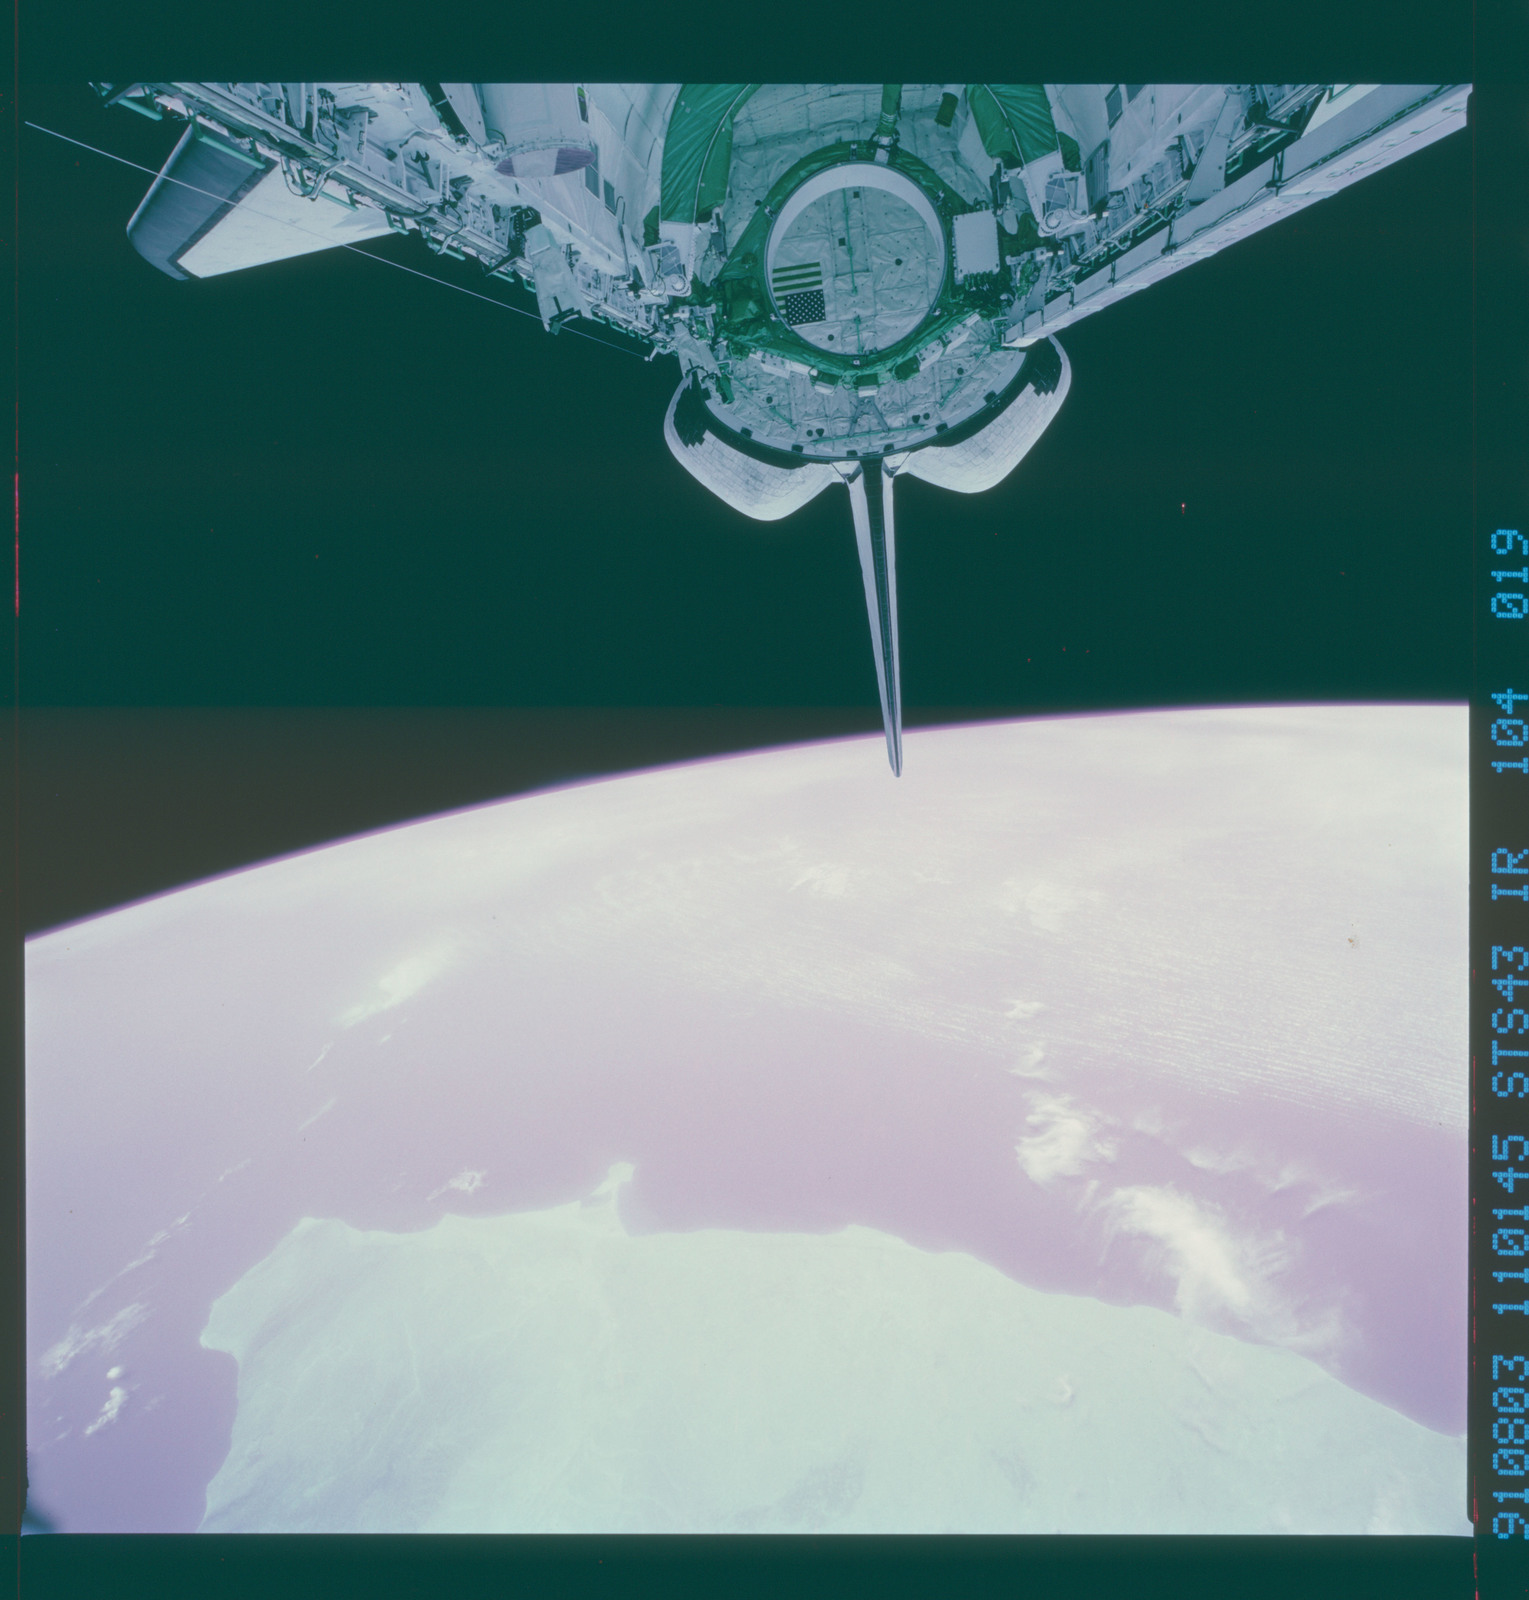 S43-104-019 - STS-043 - STS-43 earth observations